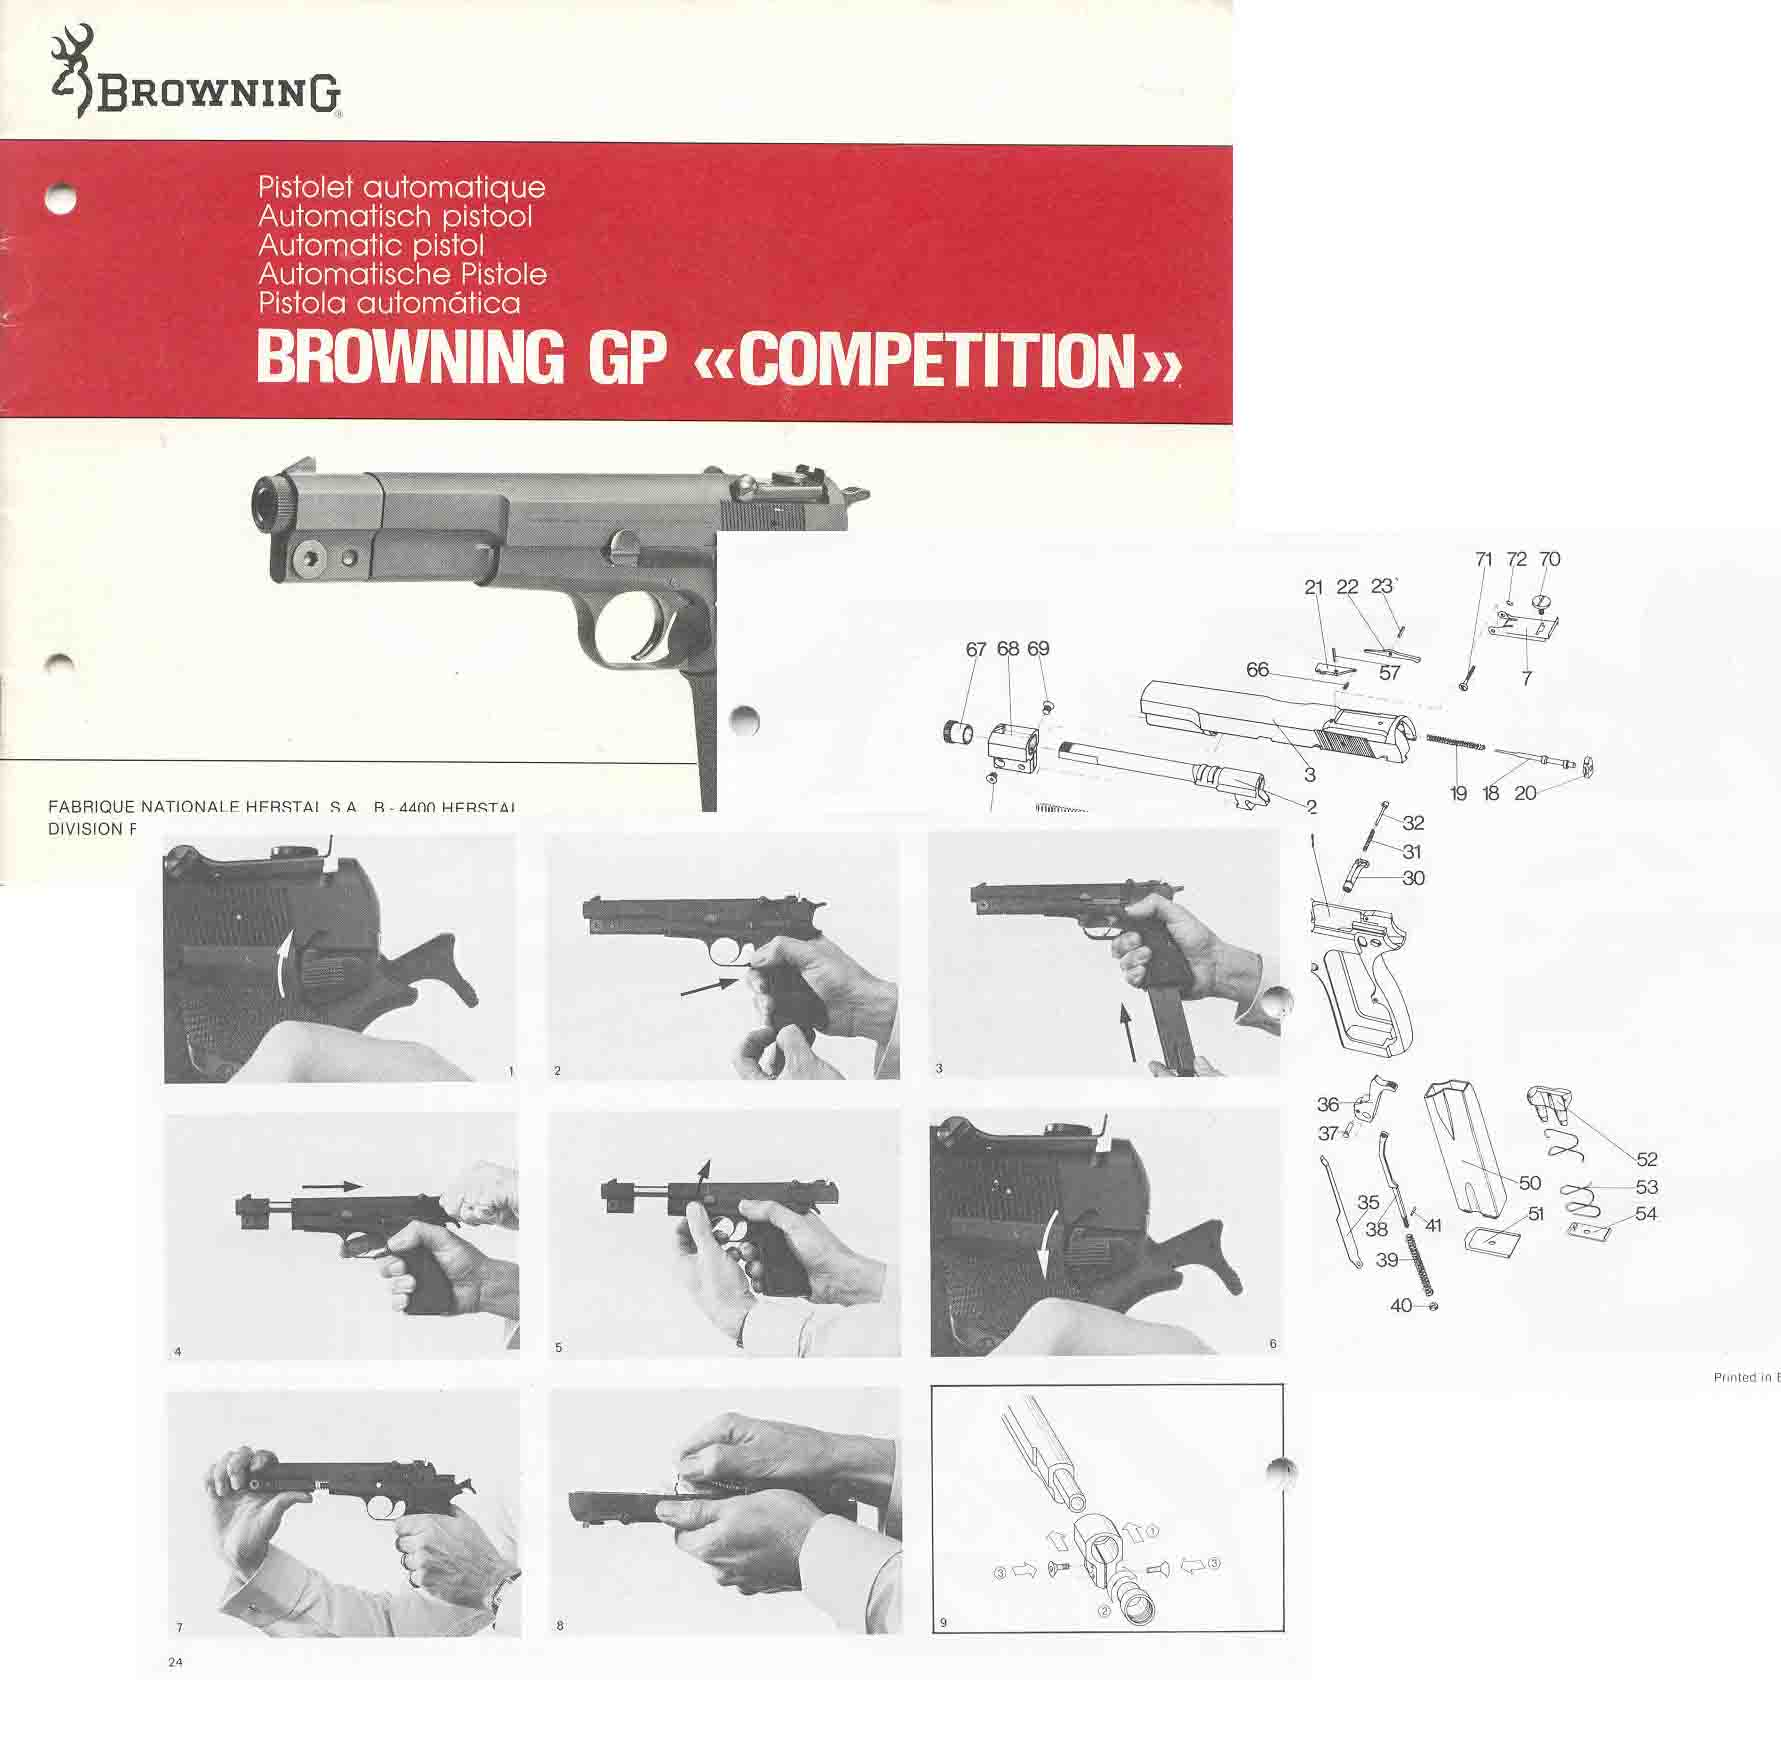 Browning 1980s GP Competition Manual- English, German, French, Italian, Spanish Text